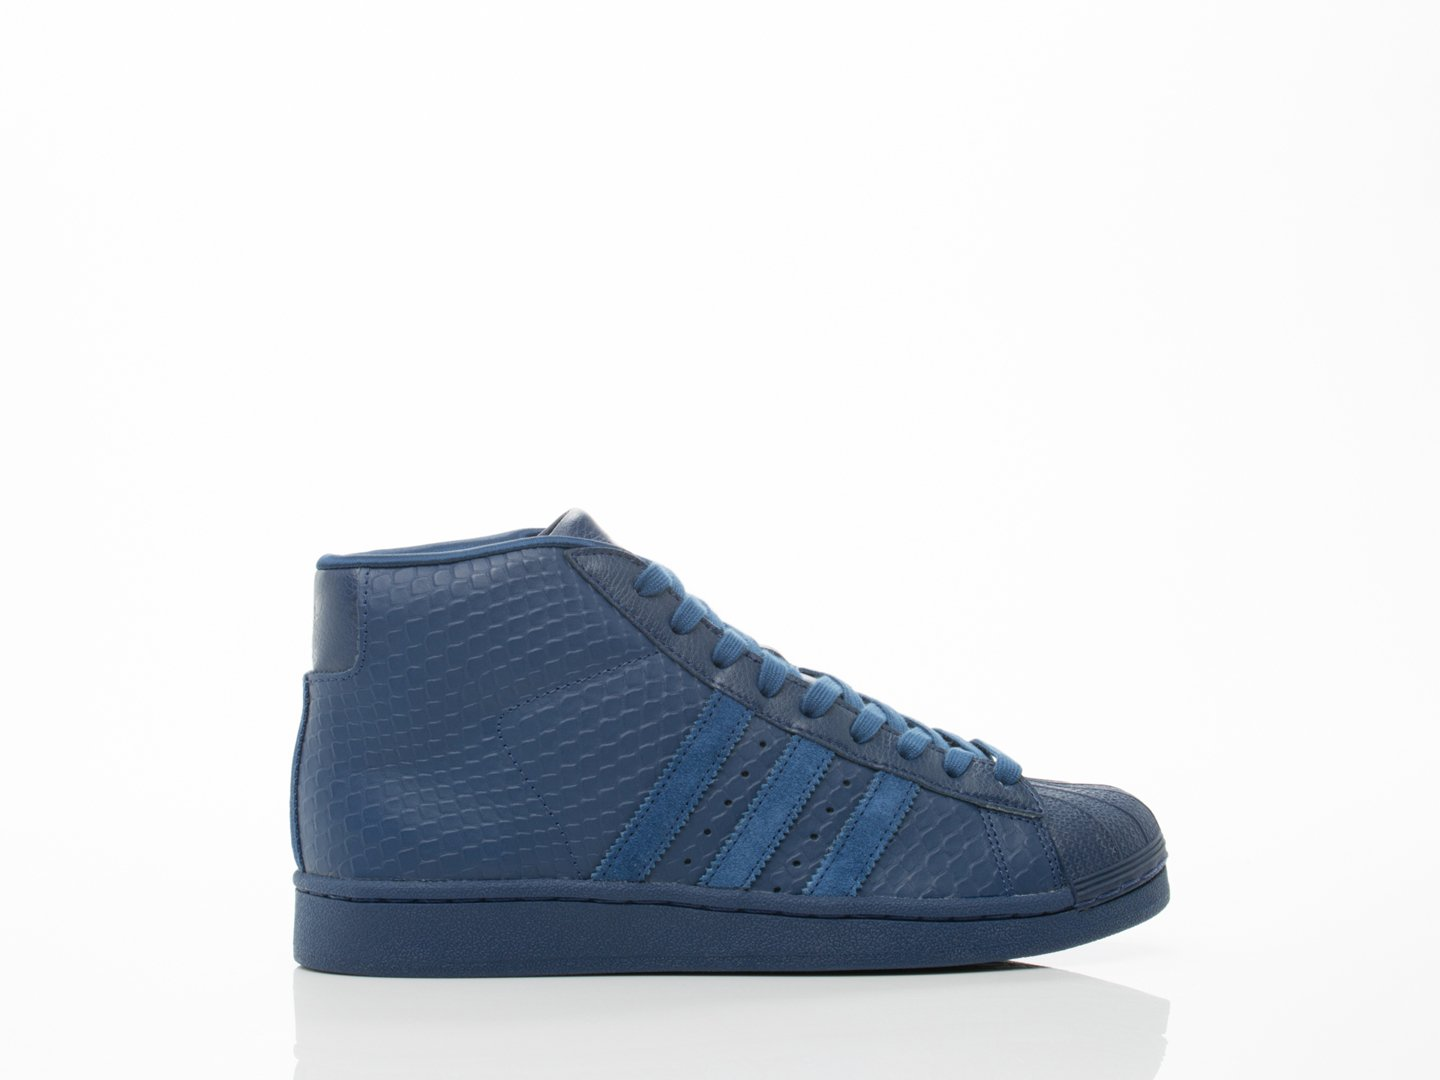 adidas Pro Model Snakeskin Men's Shoes Oxford Blue s85959-7.5